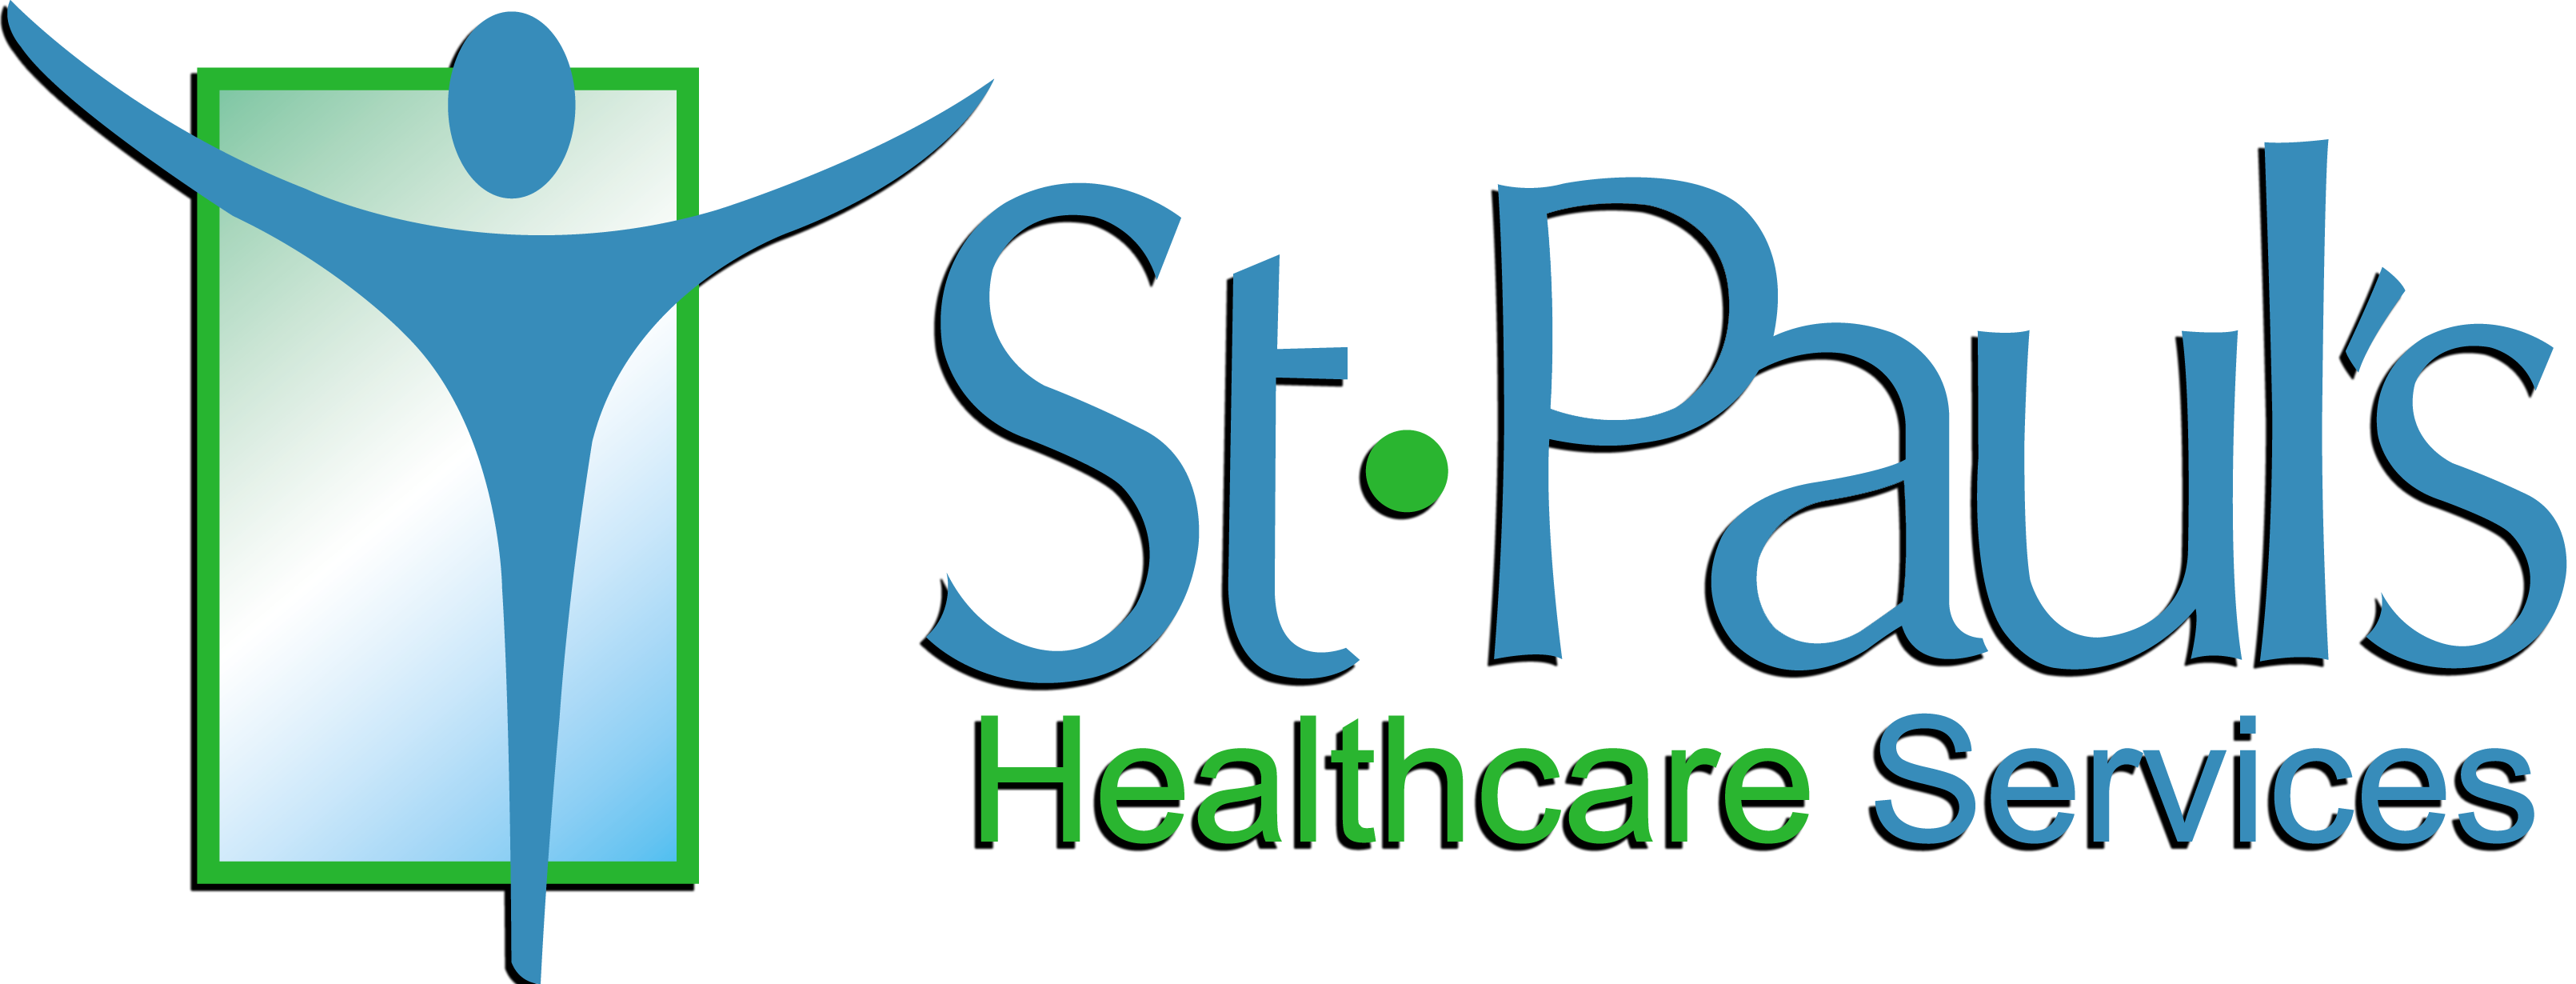 St. Pauls Health Care Services